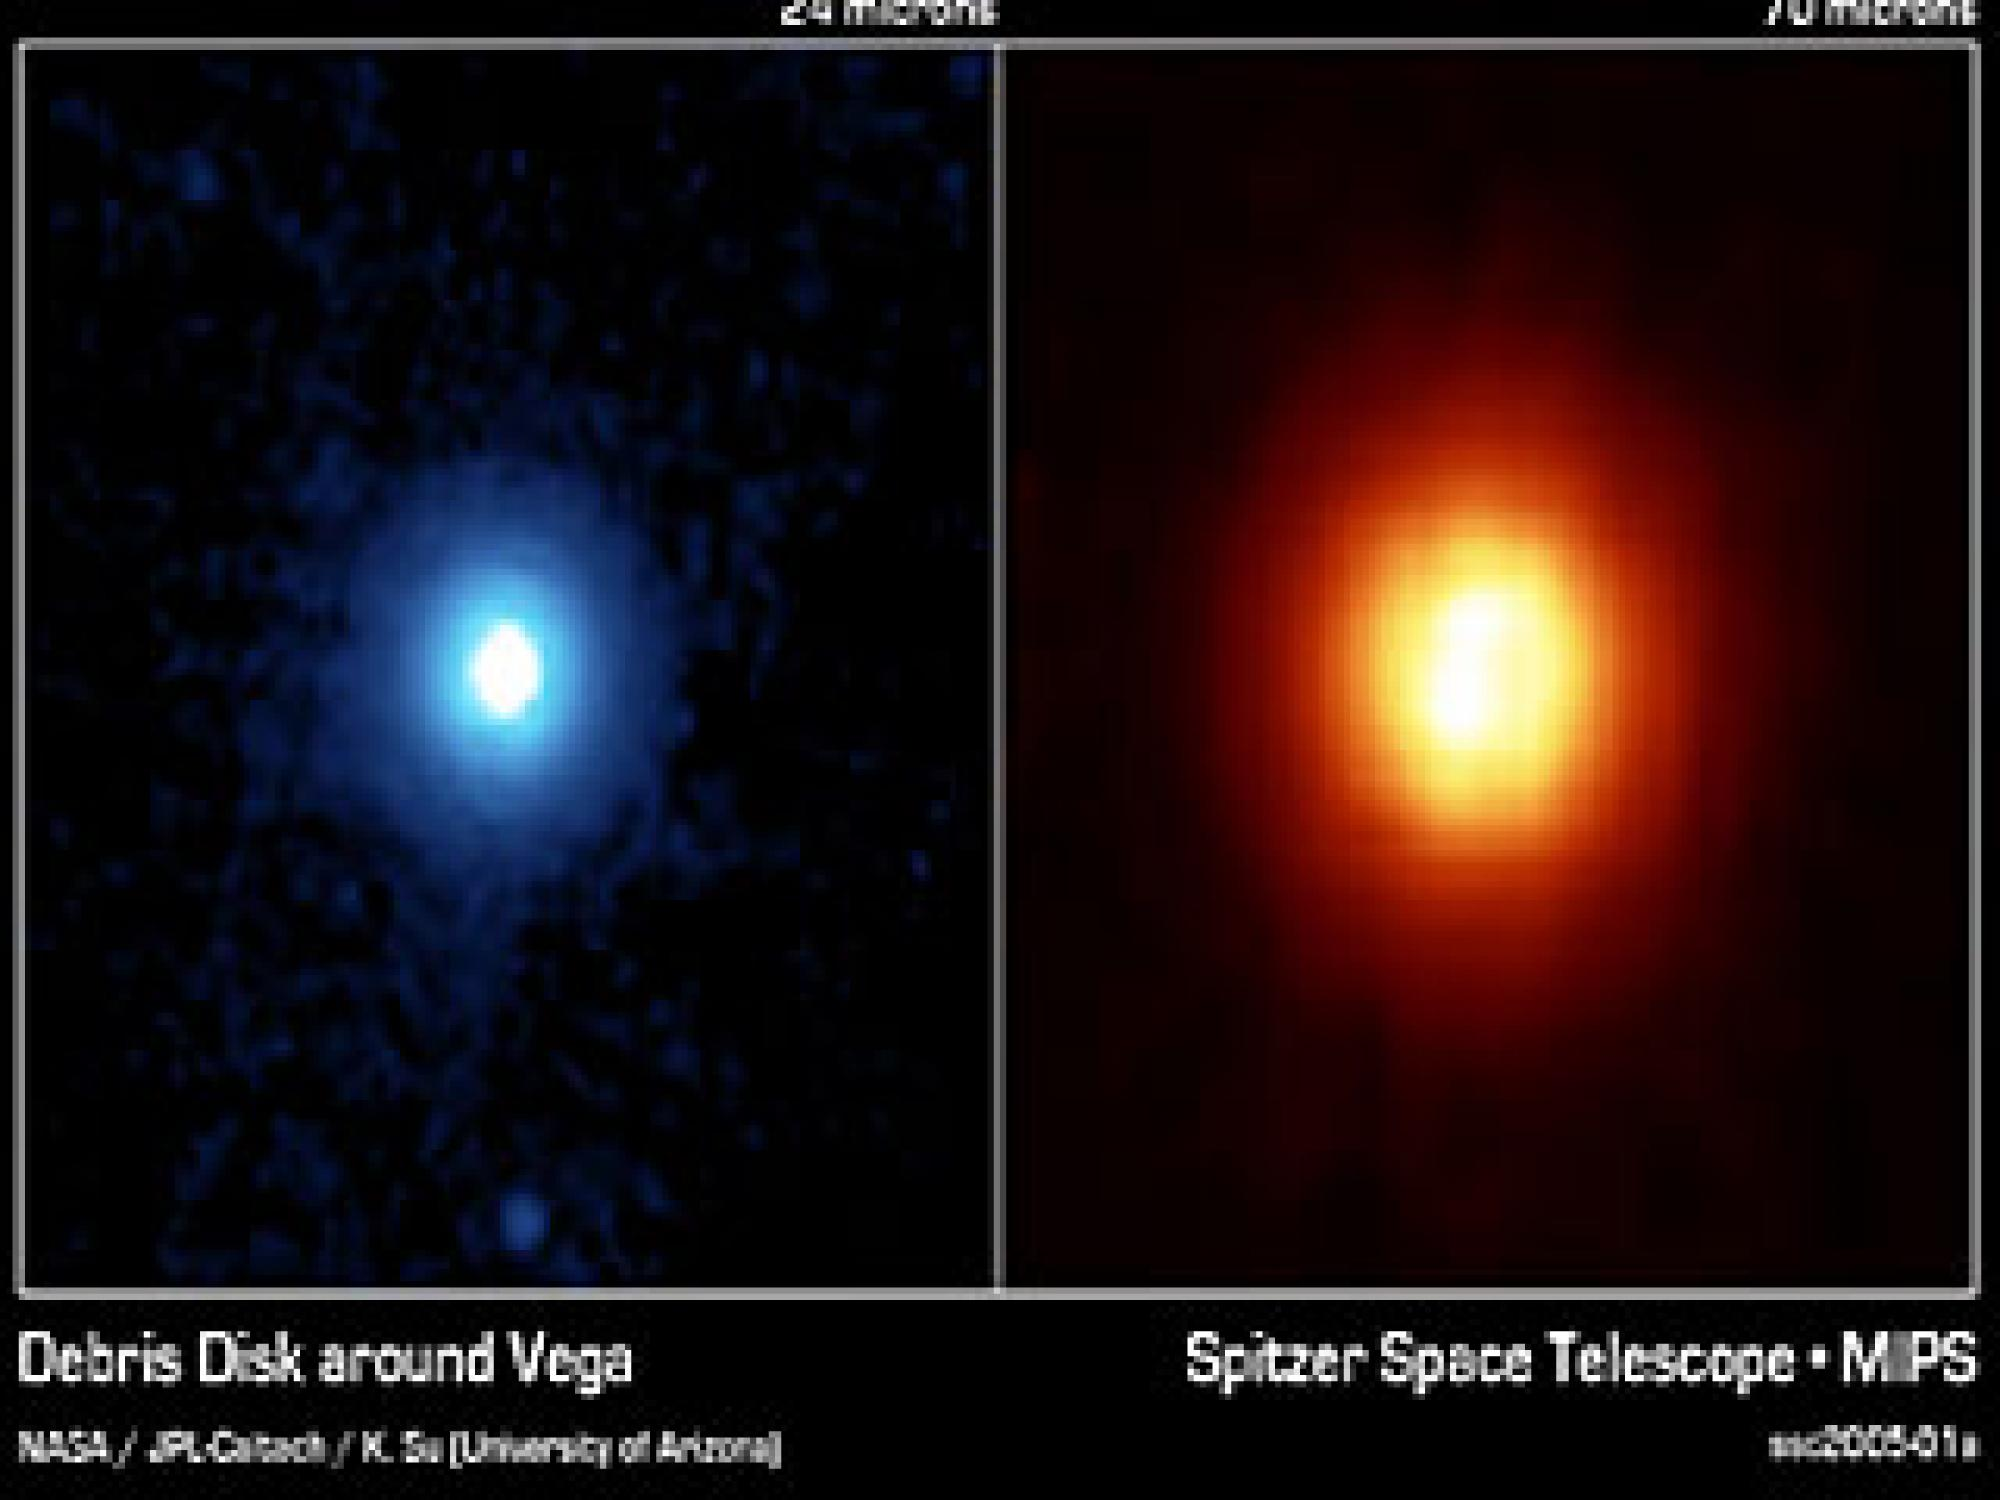 NASA's Spitzer Space Telescope captured these images of the star Vega, 25 light years away in the constellation Lycra. Spitzer detected the heat radiation from dust cloud around the star and found that the debris disc is much larger than previously t